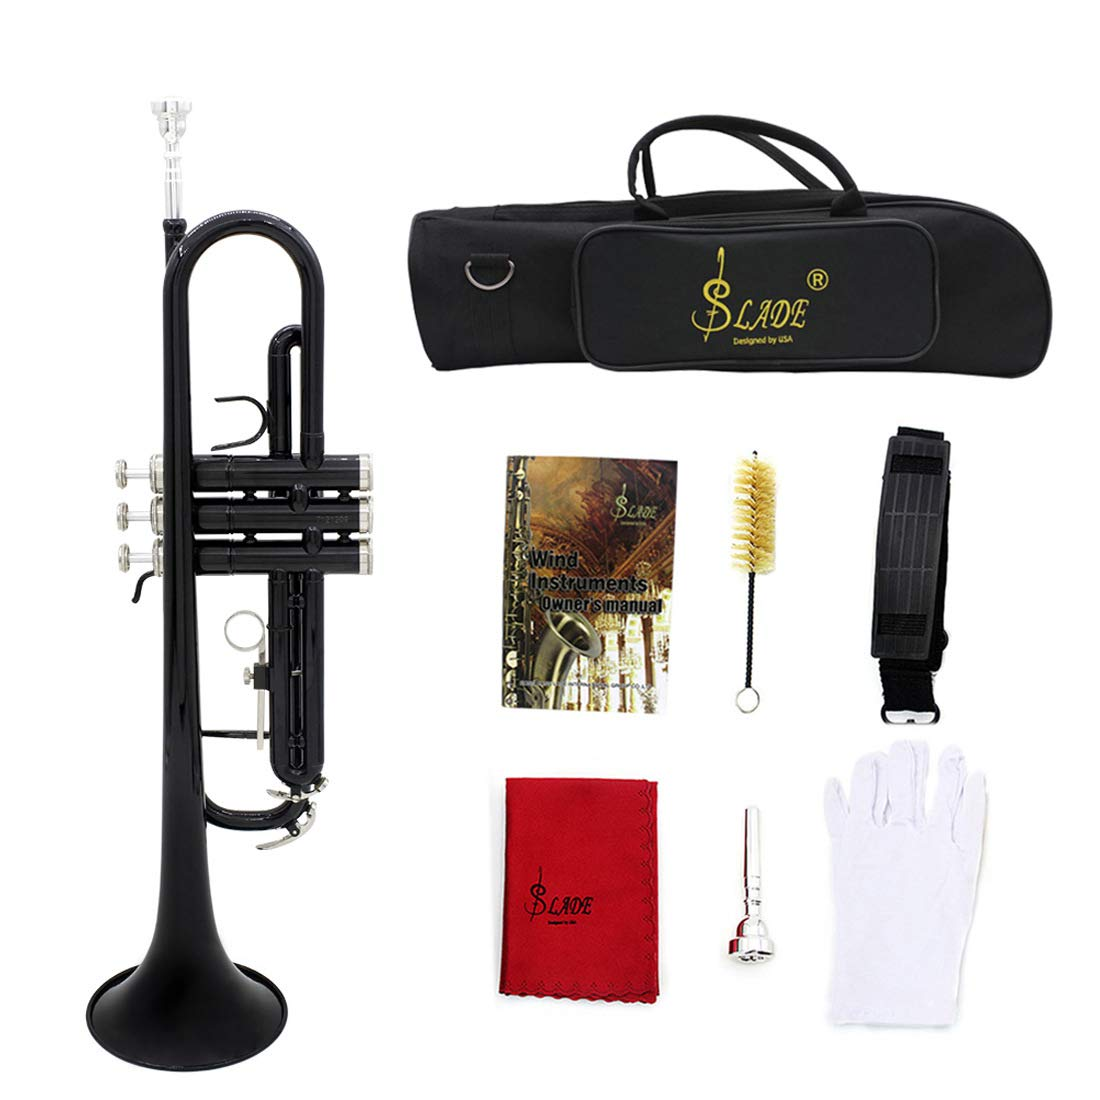 Brass Lacquered Bb Key Student Intermediate Trumpet with Full Accessories and Kit Standard Bb Trumpet Set for Student Beginner (Black)